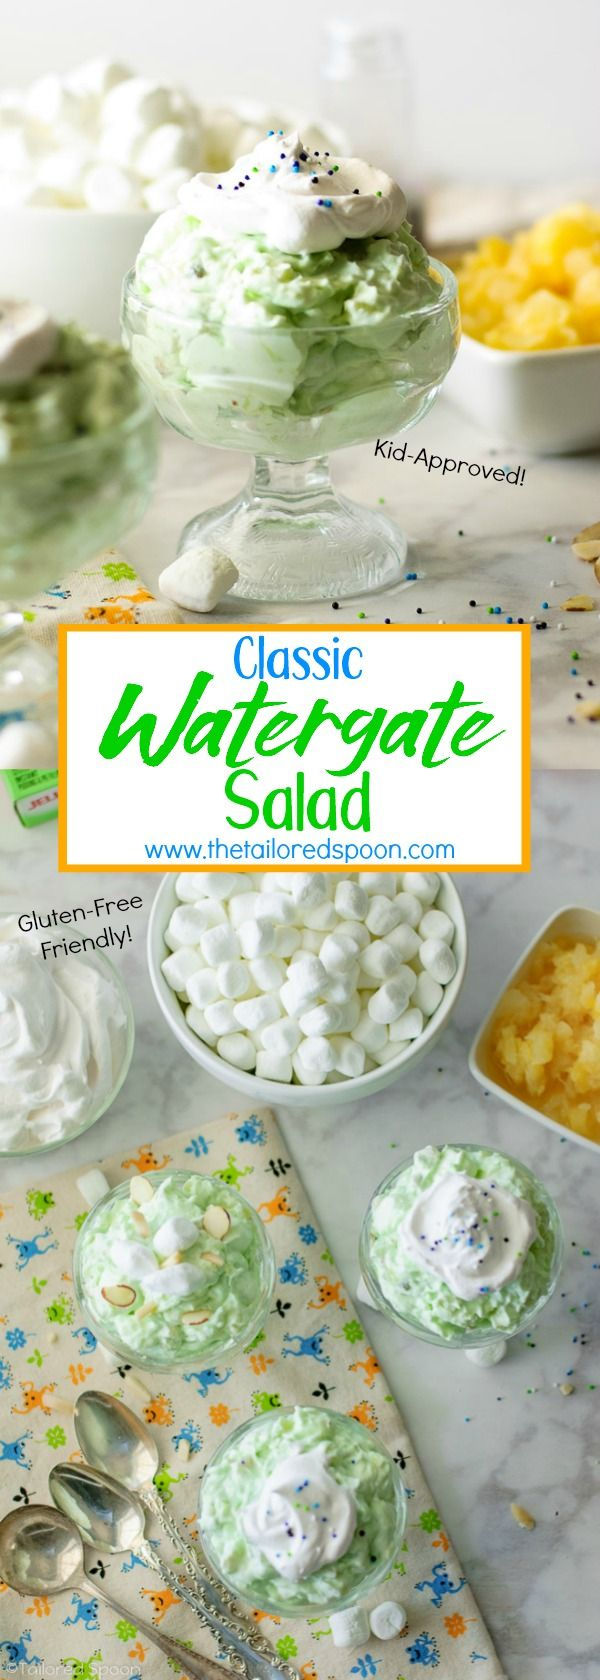 This Classic Watergate Salad recipe is a creamy, sweet, fluffy, crunchy dessert made with only 5 ingredients and all-in-one palate explosion that disguises itself as a salad. #dessert #classic #greengoo #5ingredientsorless #recipe #simple